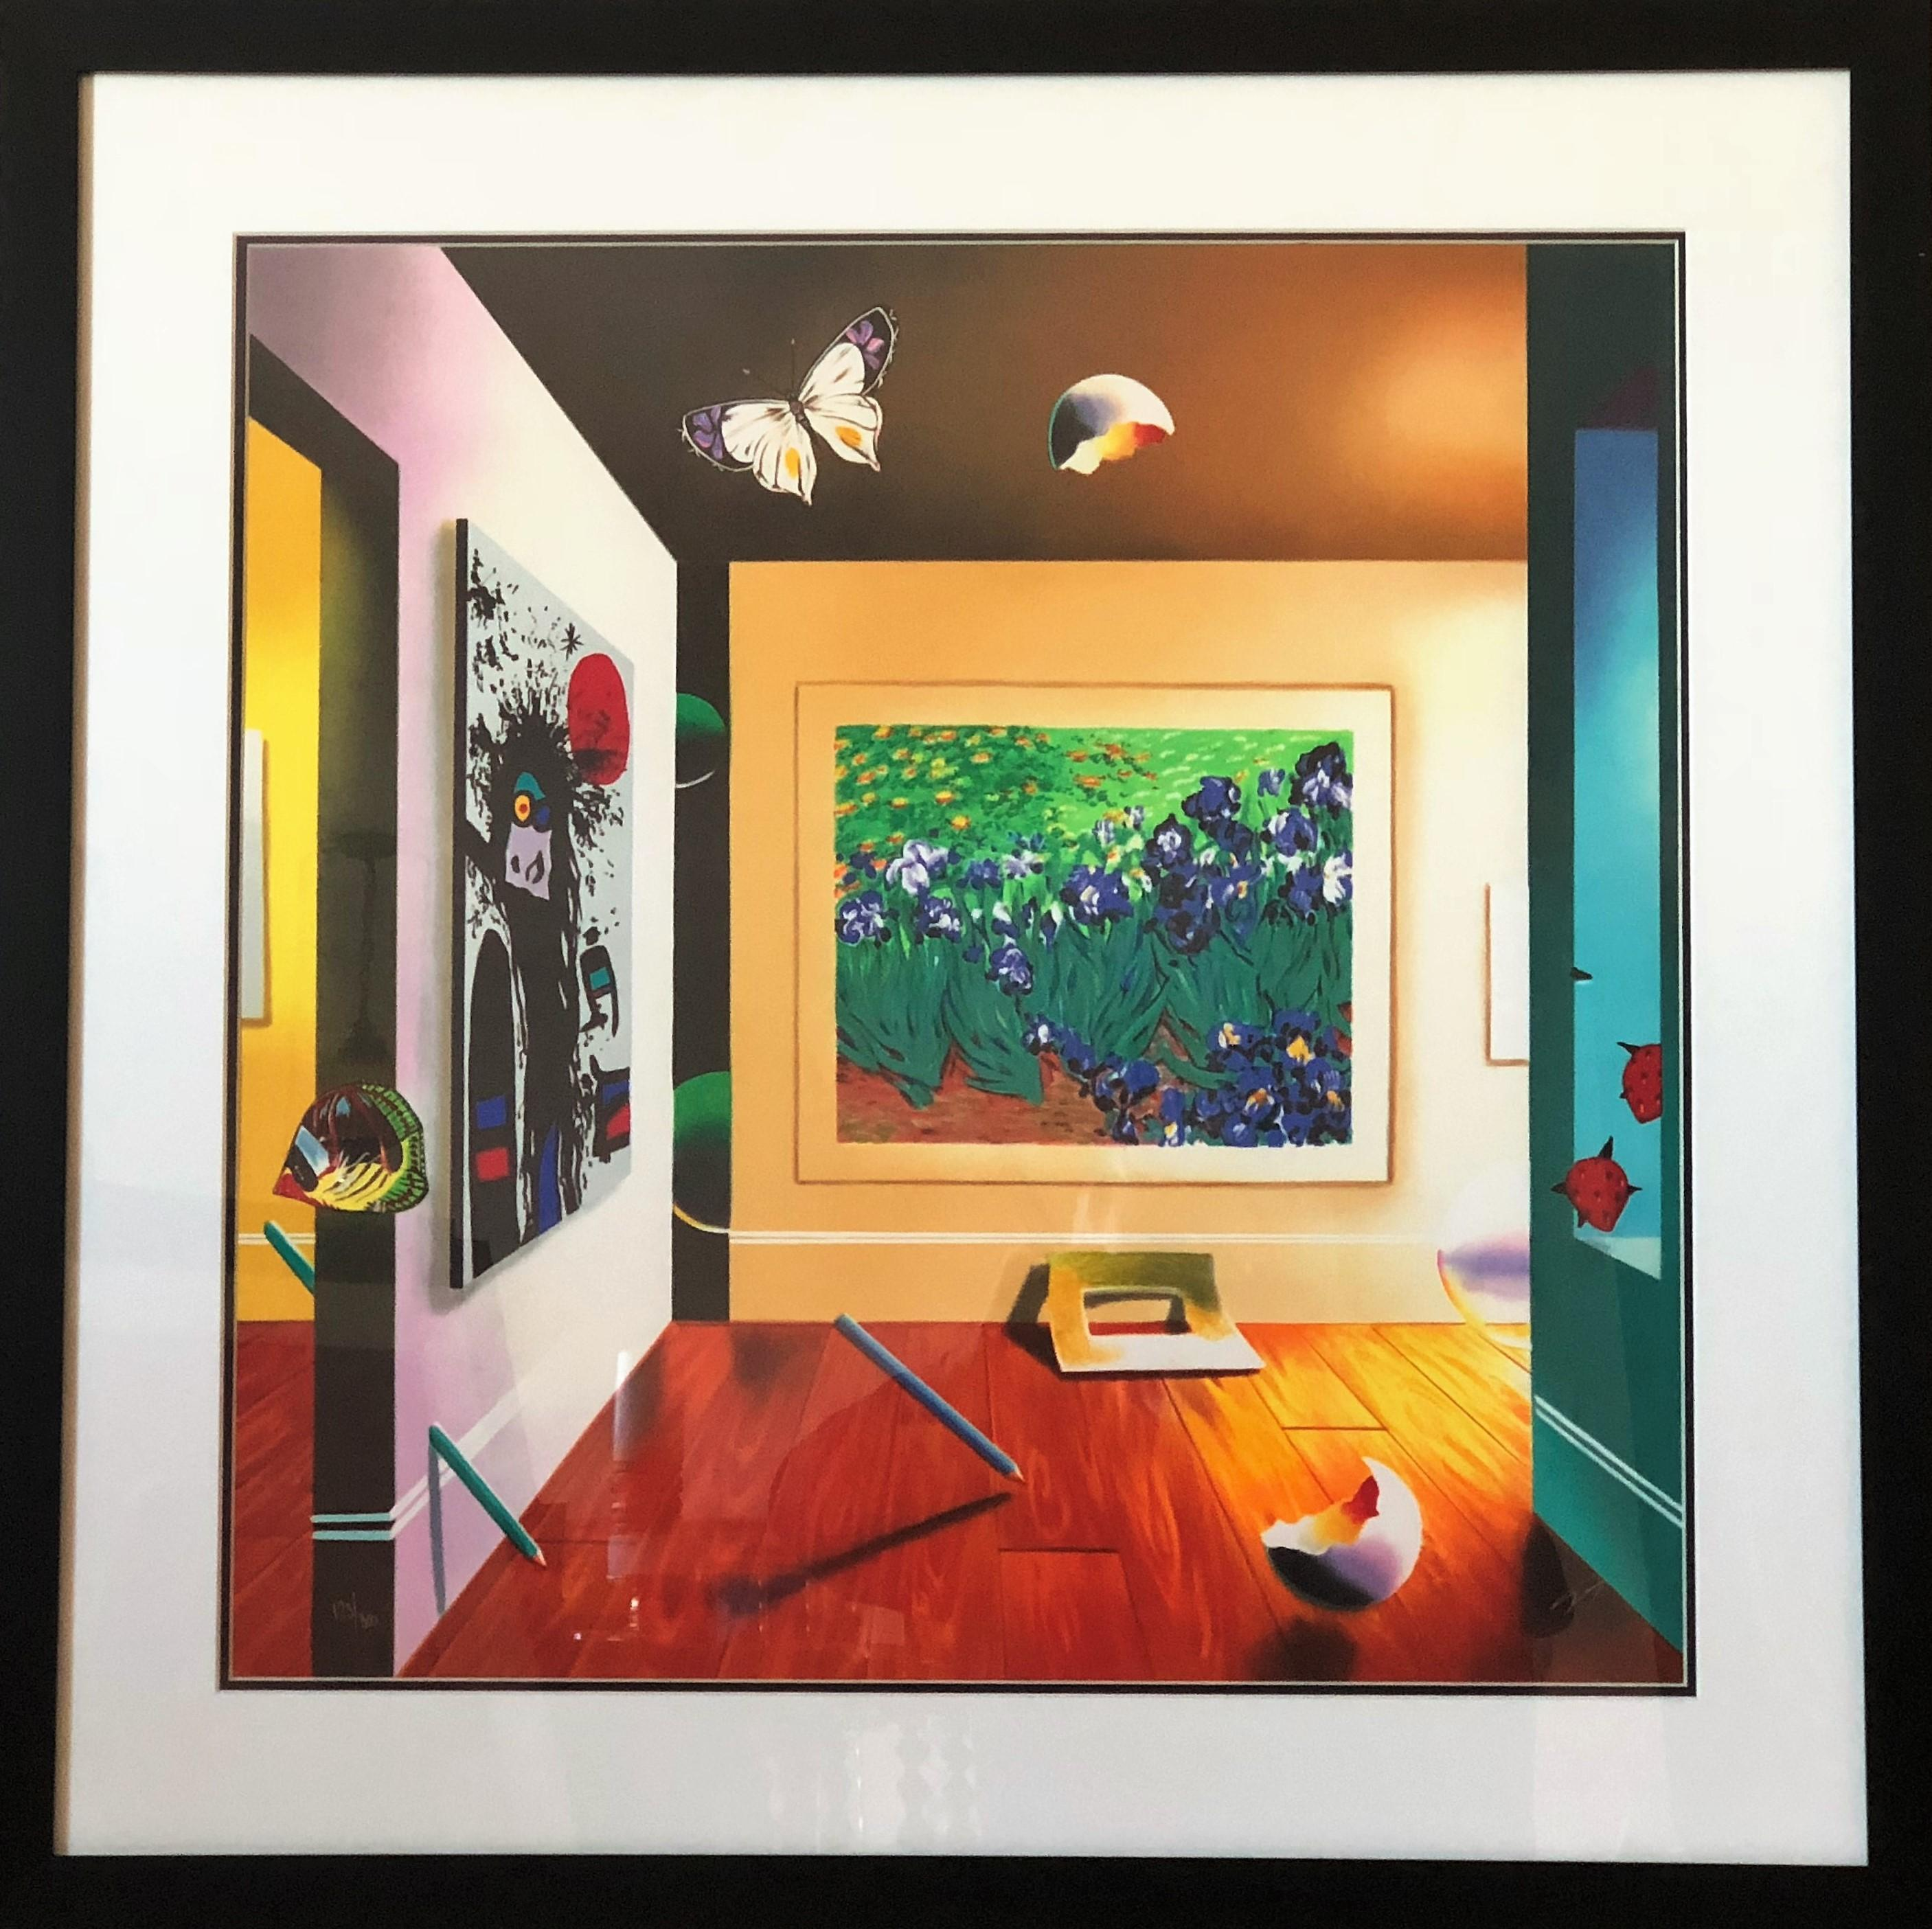 Homage to Van Gogh - Limited Edition Lithograph by Ferjo